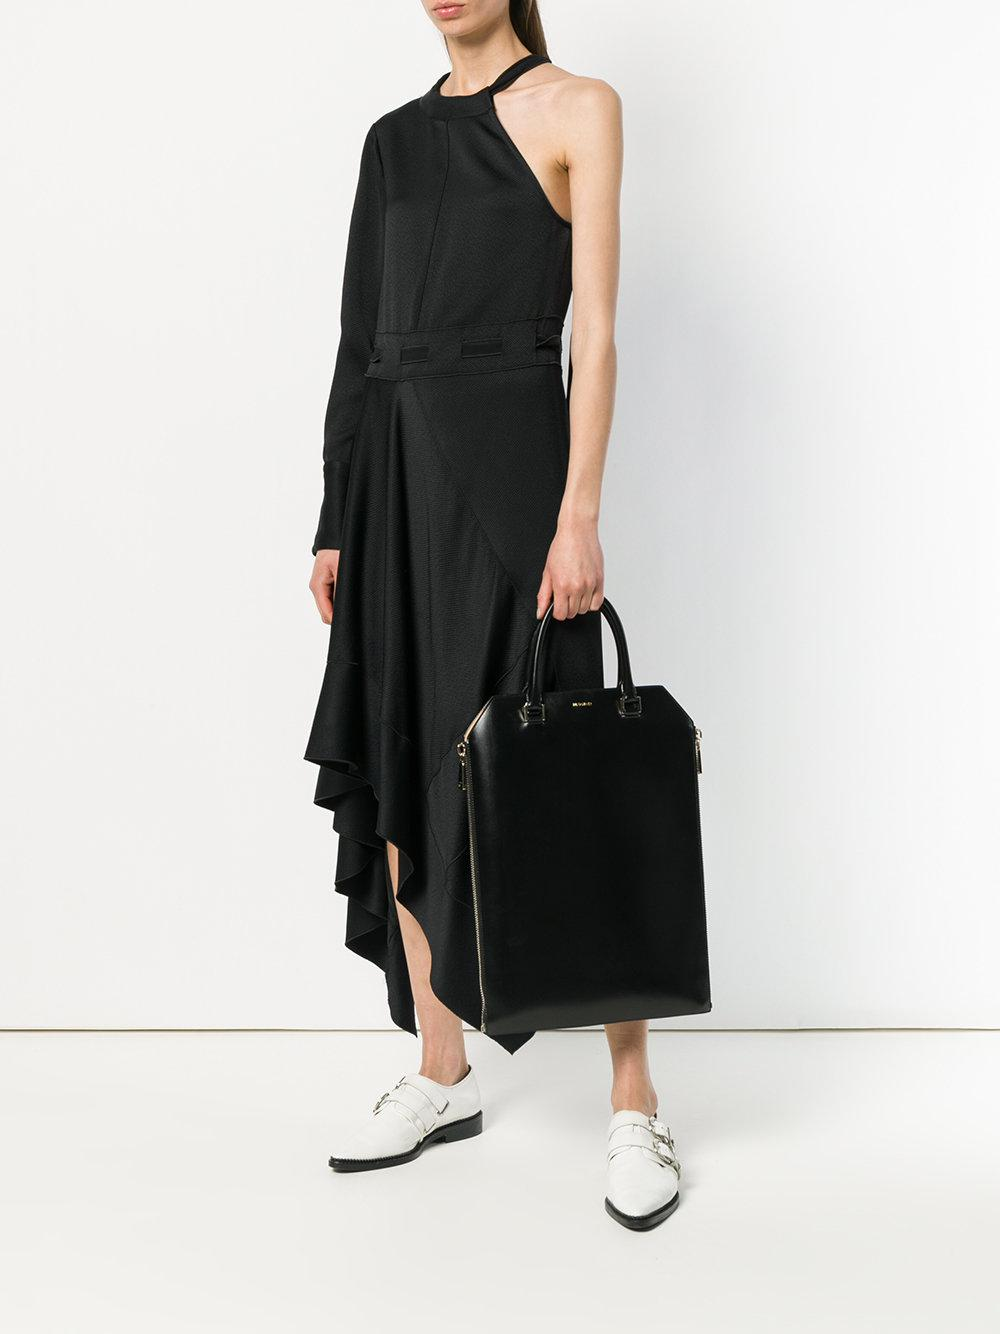 Jil Sander Leather Rectangular Tote Bag in Black